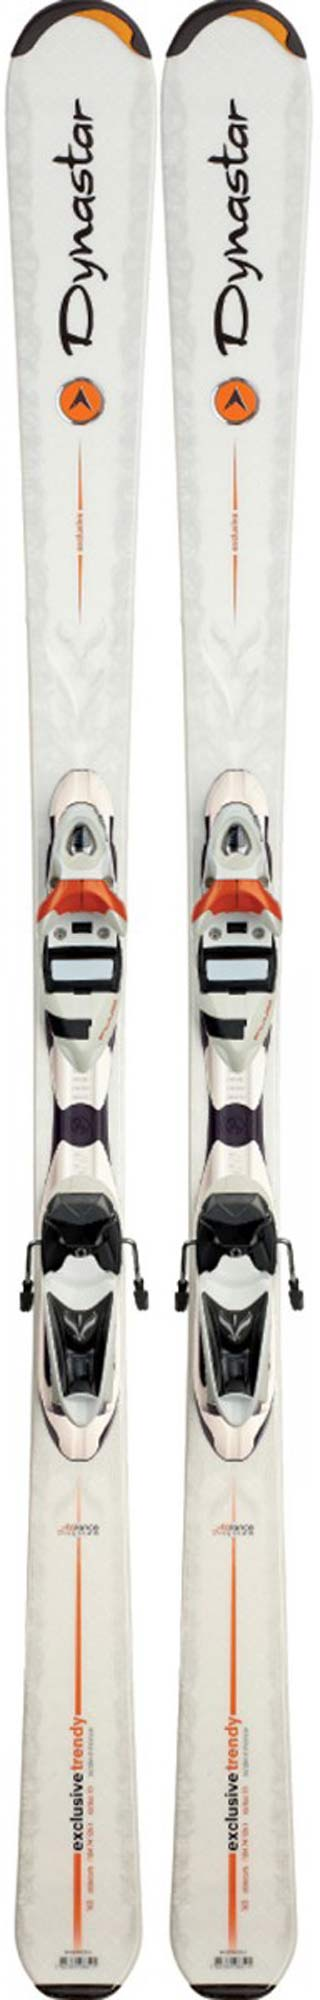 Topsheets of 2012 Dynastar Exclusive Trendy Fluid Skis For Sale